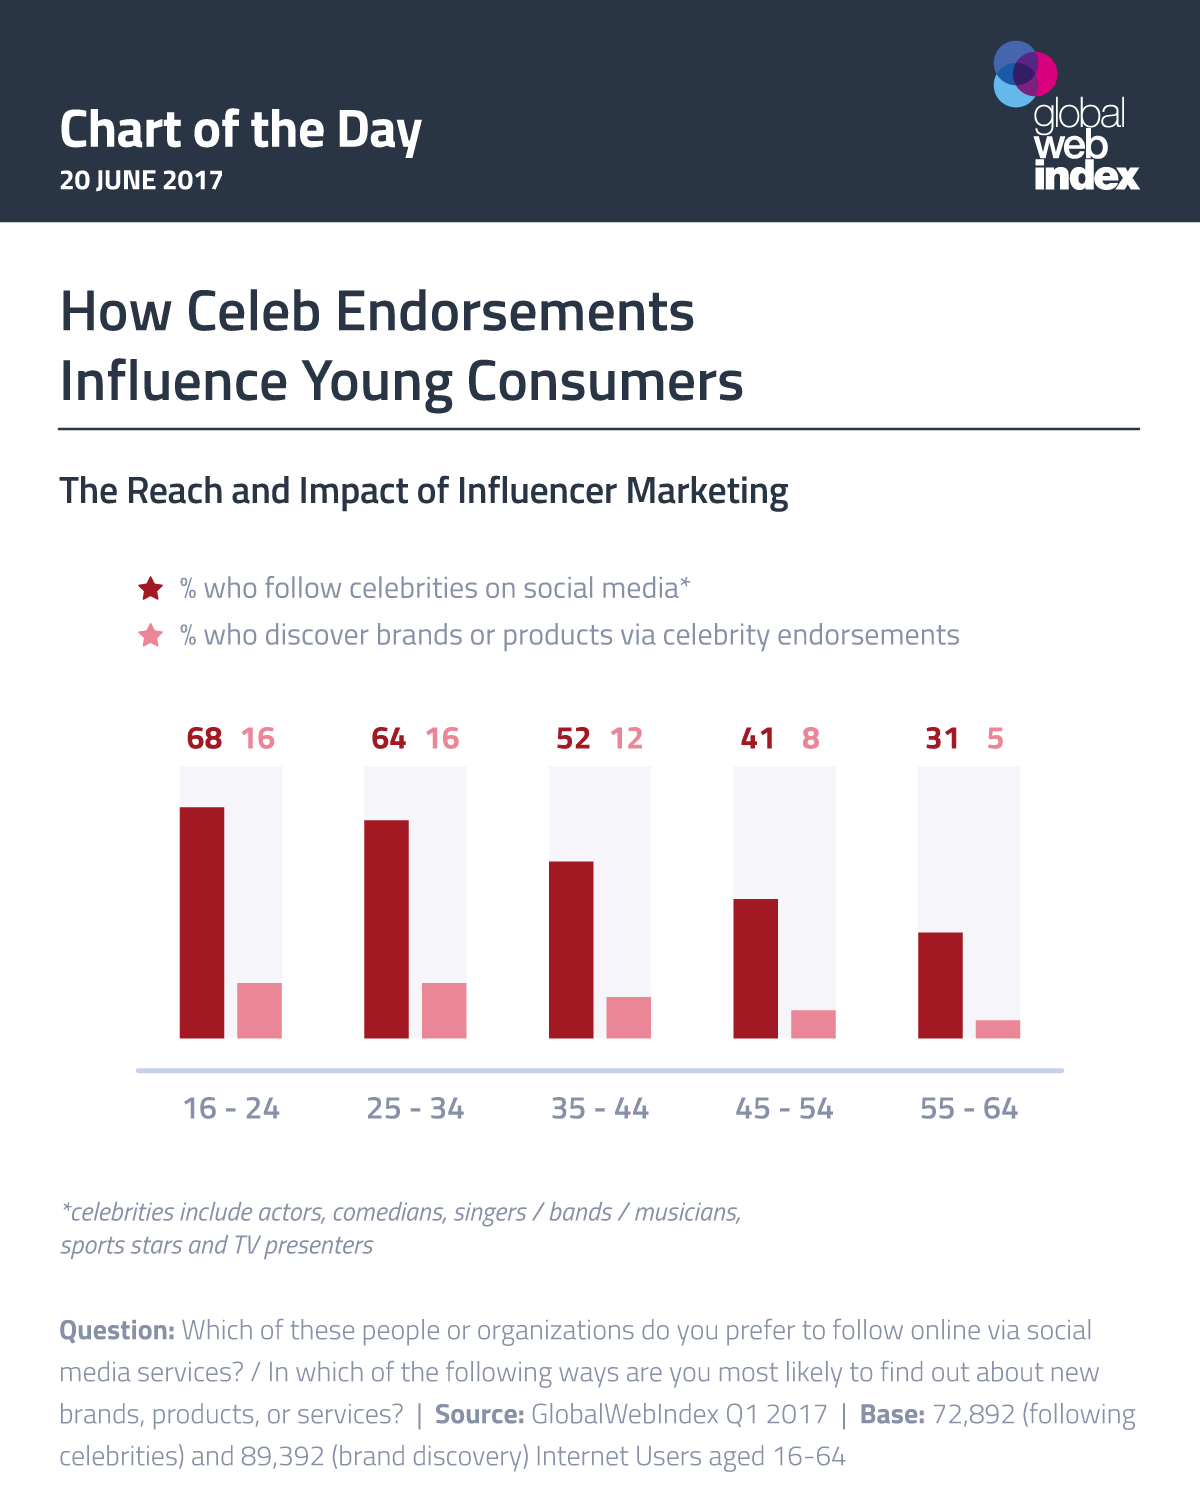 How Celeb Endorsements Influence Young Consumers